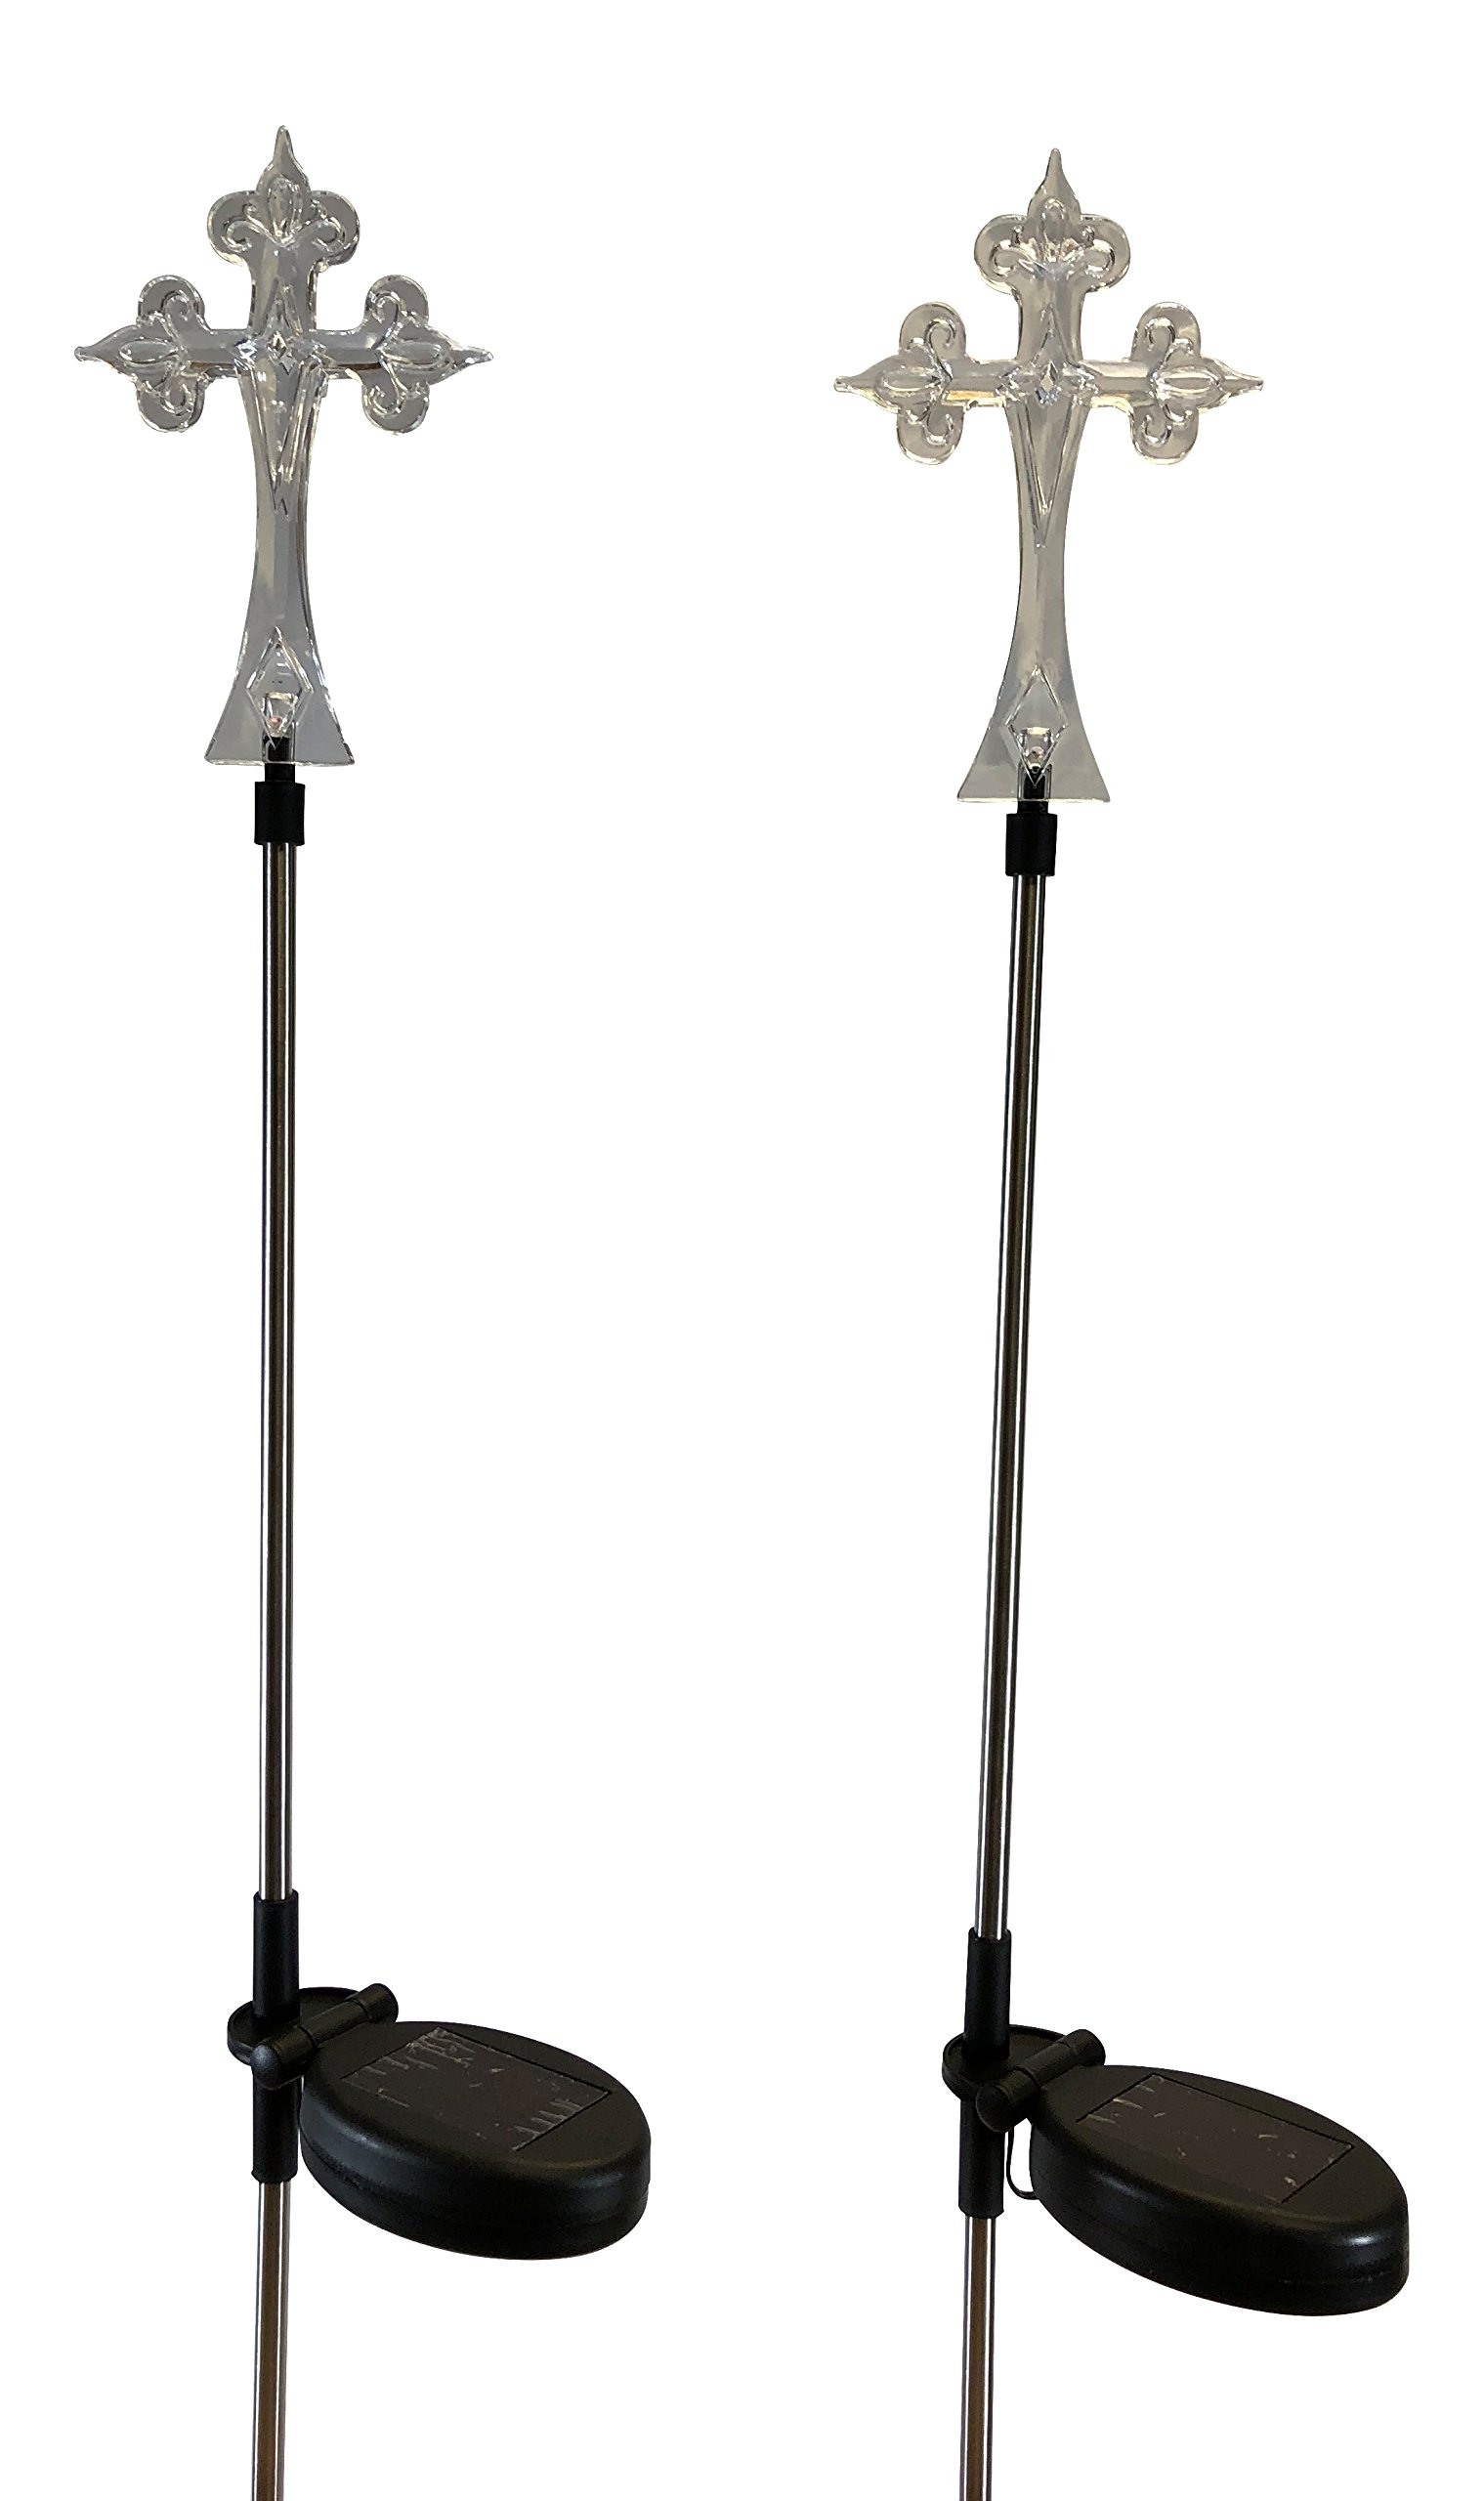 StonyCreek Solar Powered Cross Solar Light Landscape Garden Stake for Outdoor Pathway Patio, Set of 2pcs